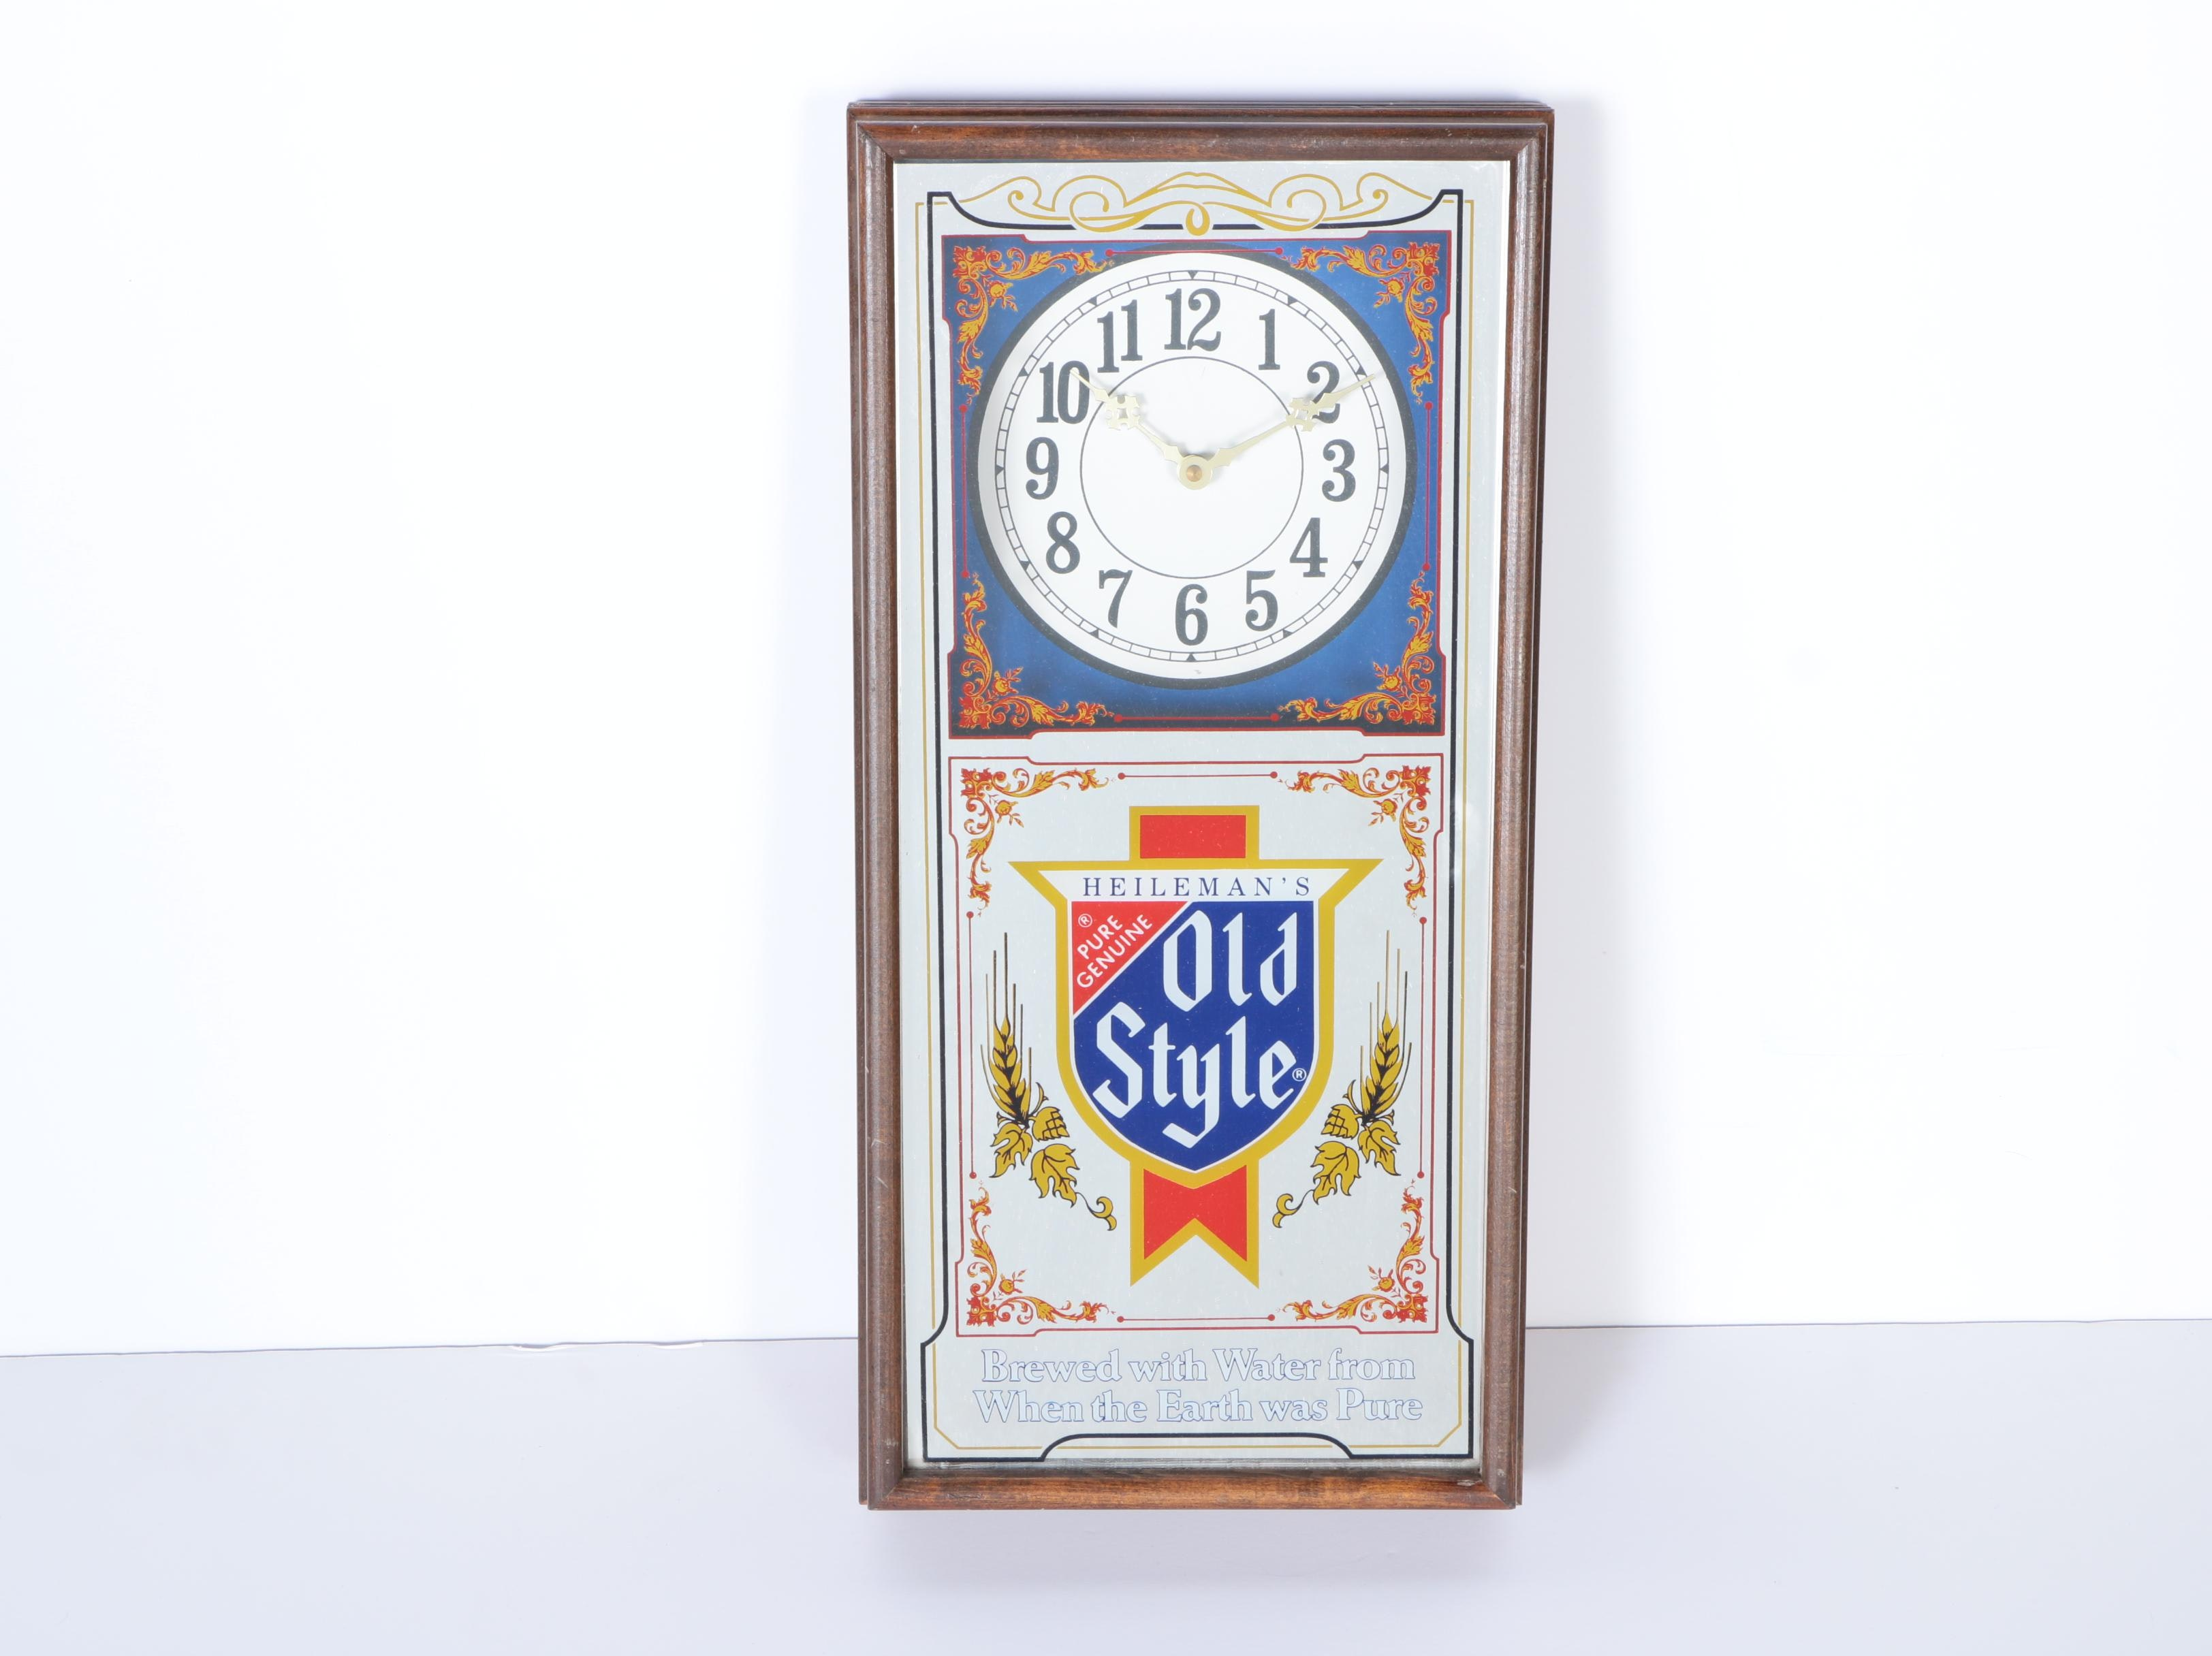 Old Style Beer Illuminated Clock